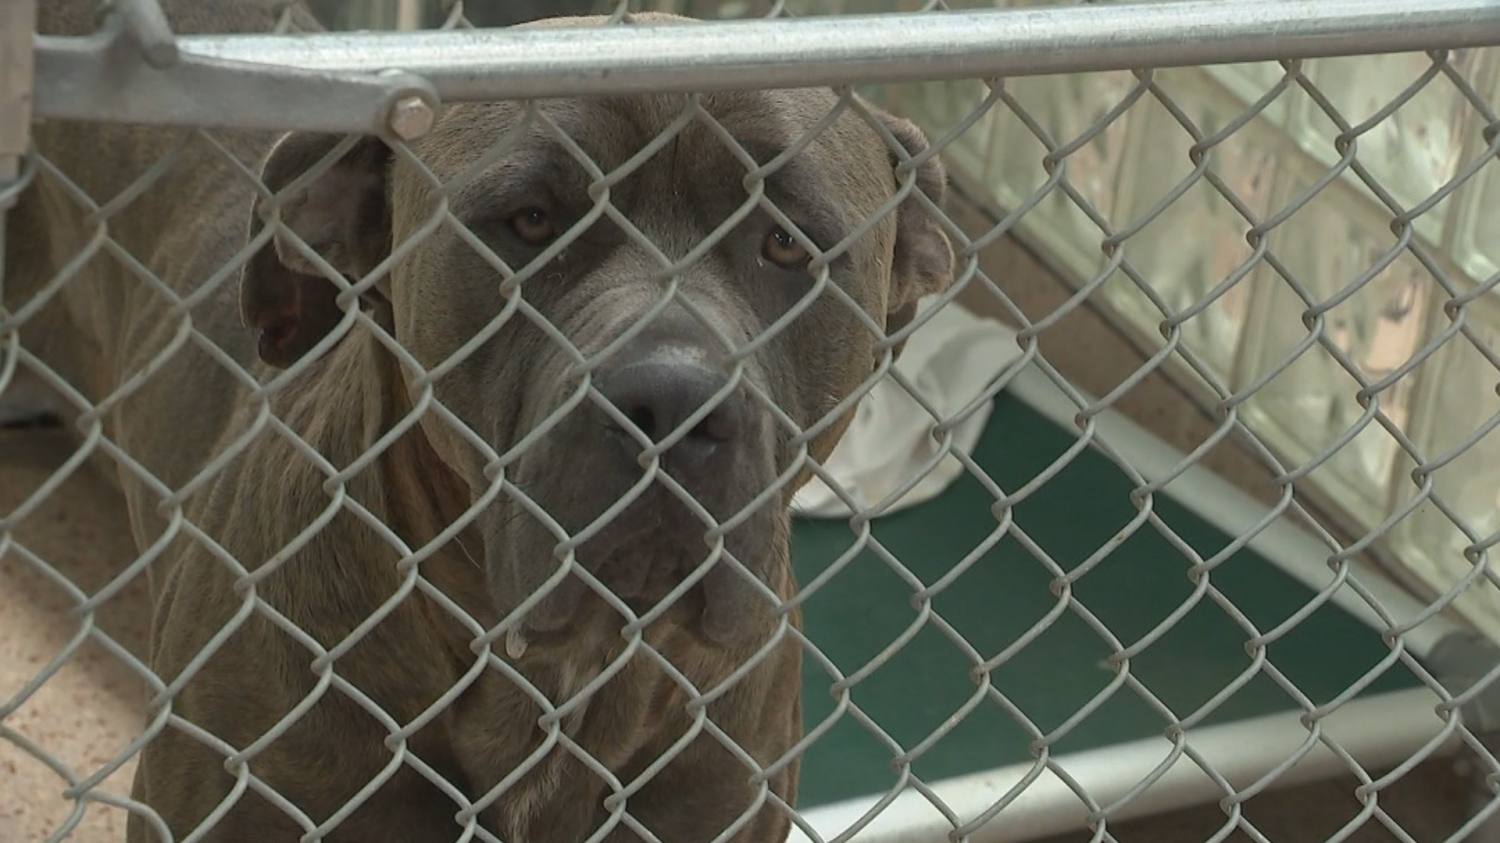 Report finds animal shelters euthanizing pets